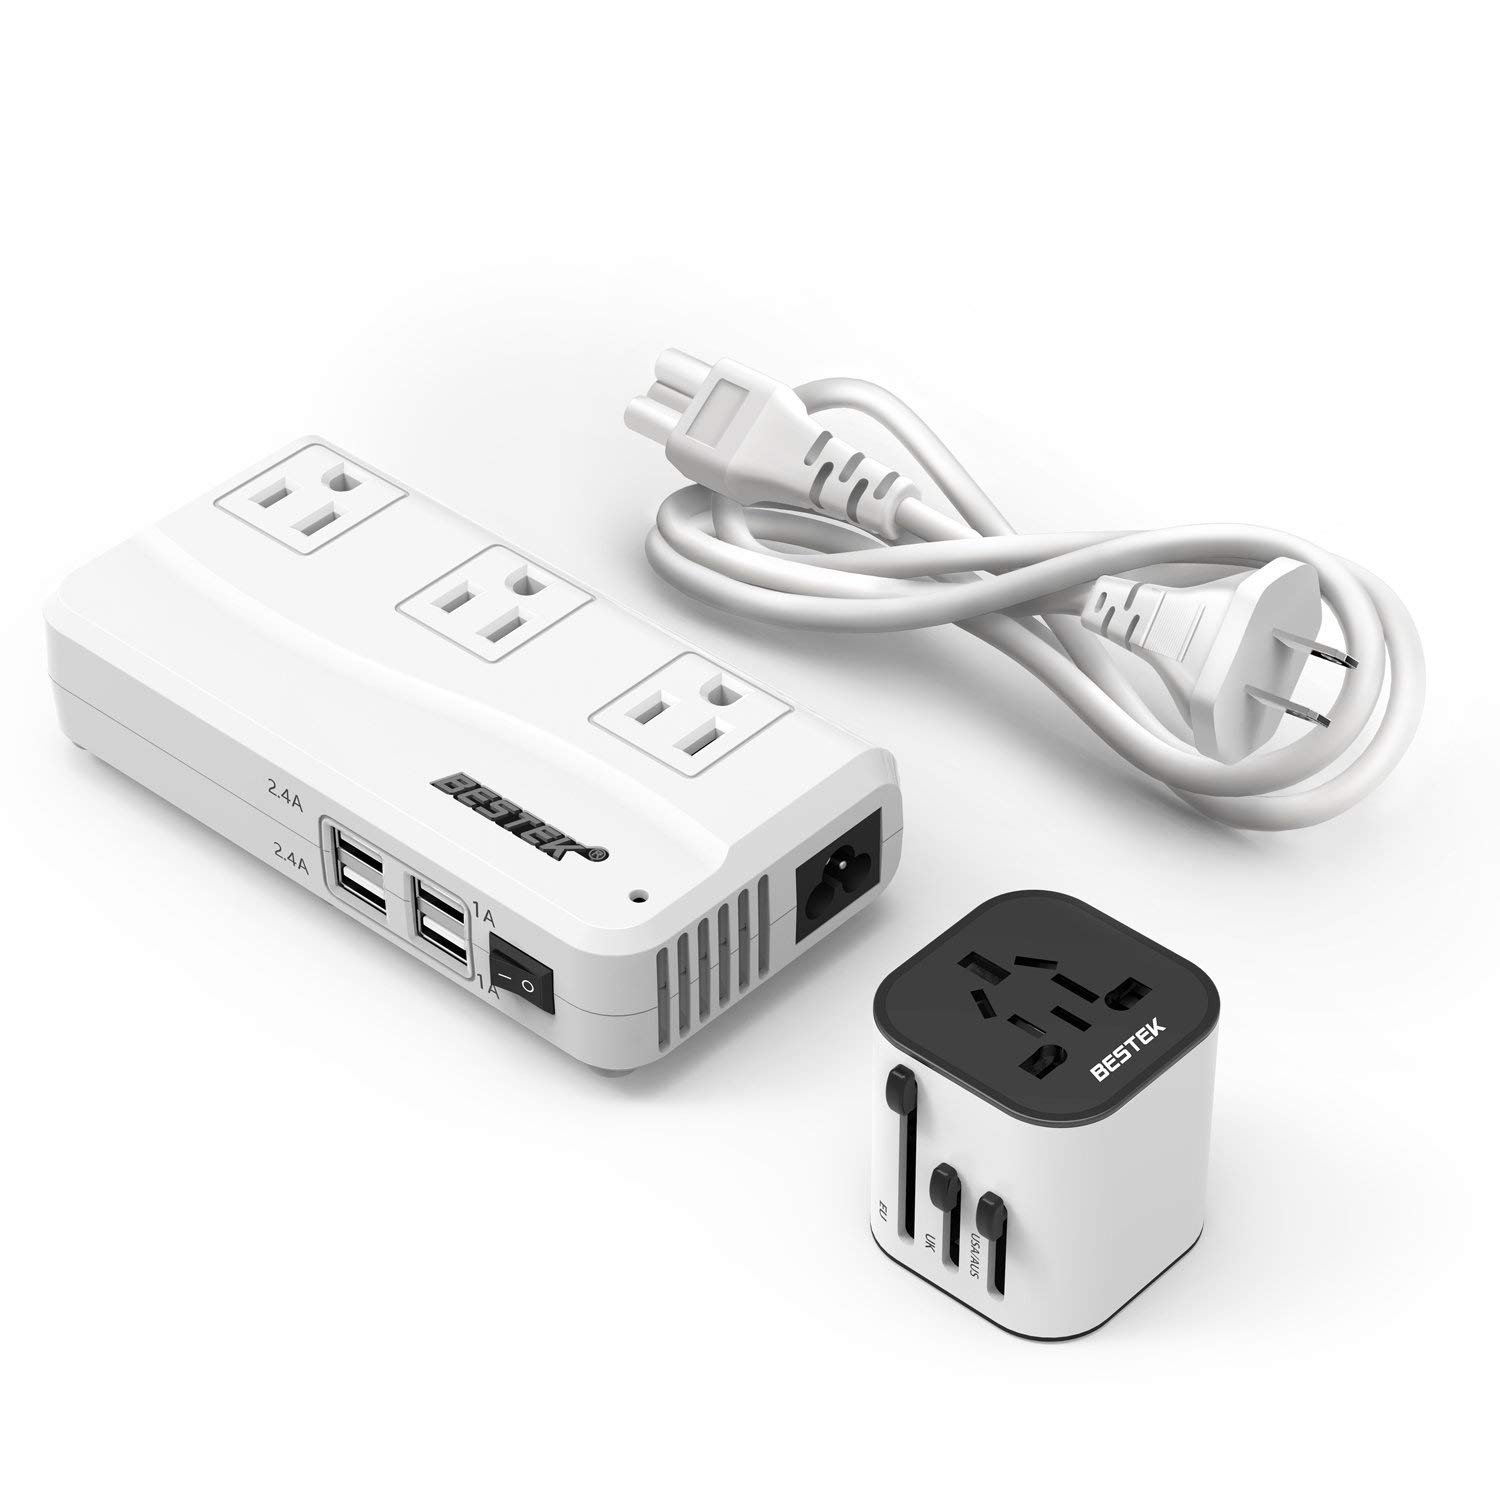 BESTEK Voltage Converter 220V to 110V Converter with 6A 4 USB Ports and UK/AU/US/EU Travel Adapter, Carrying Bag Included BHBUSWA809